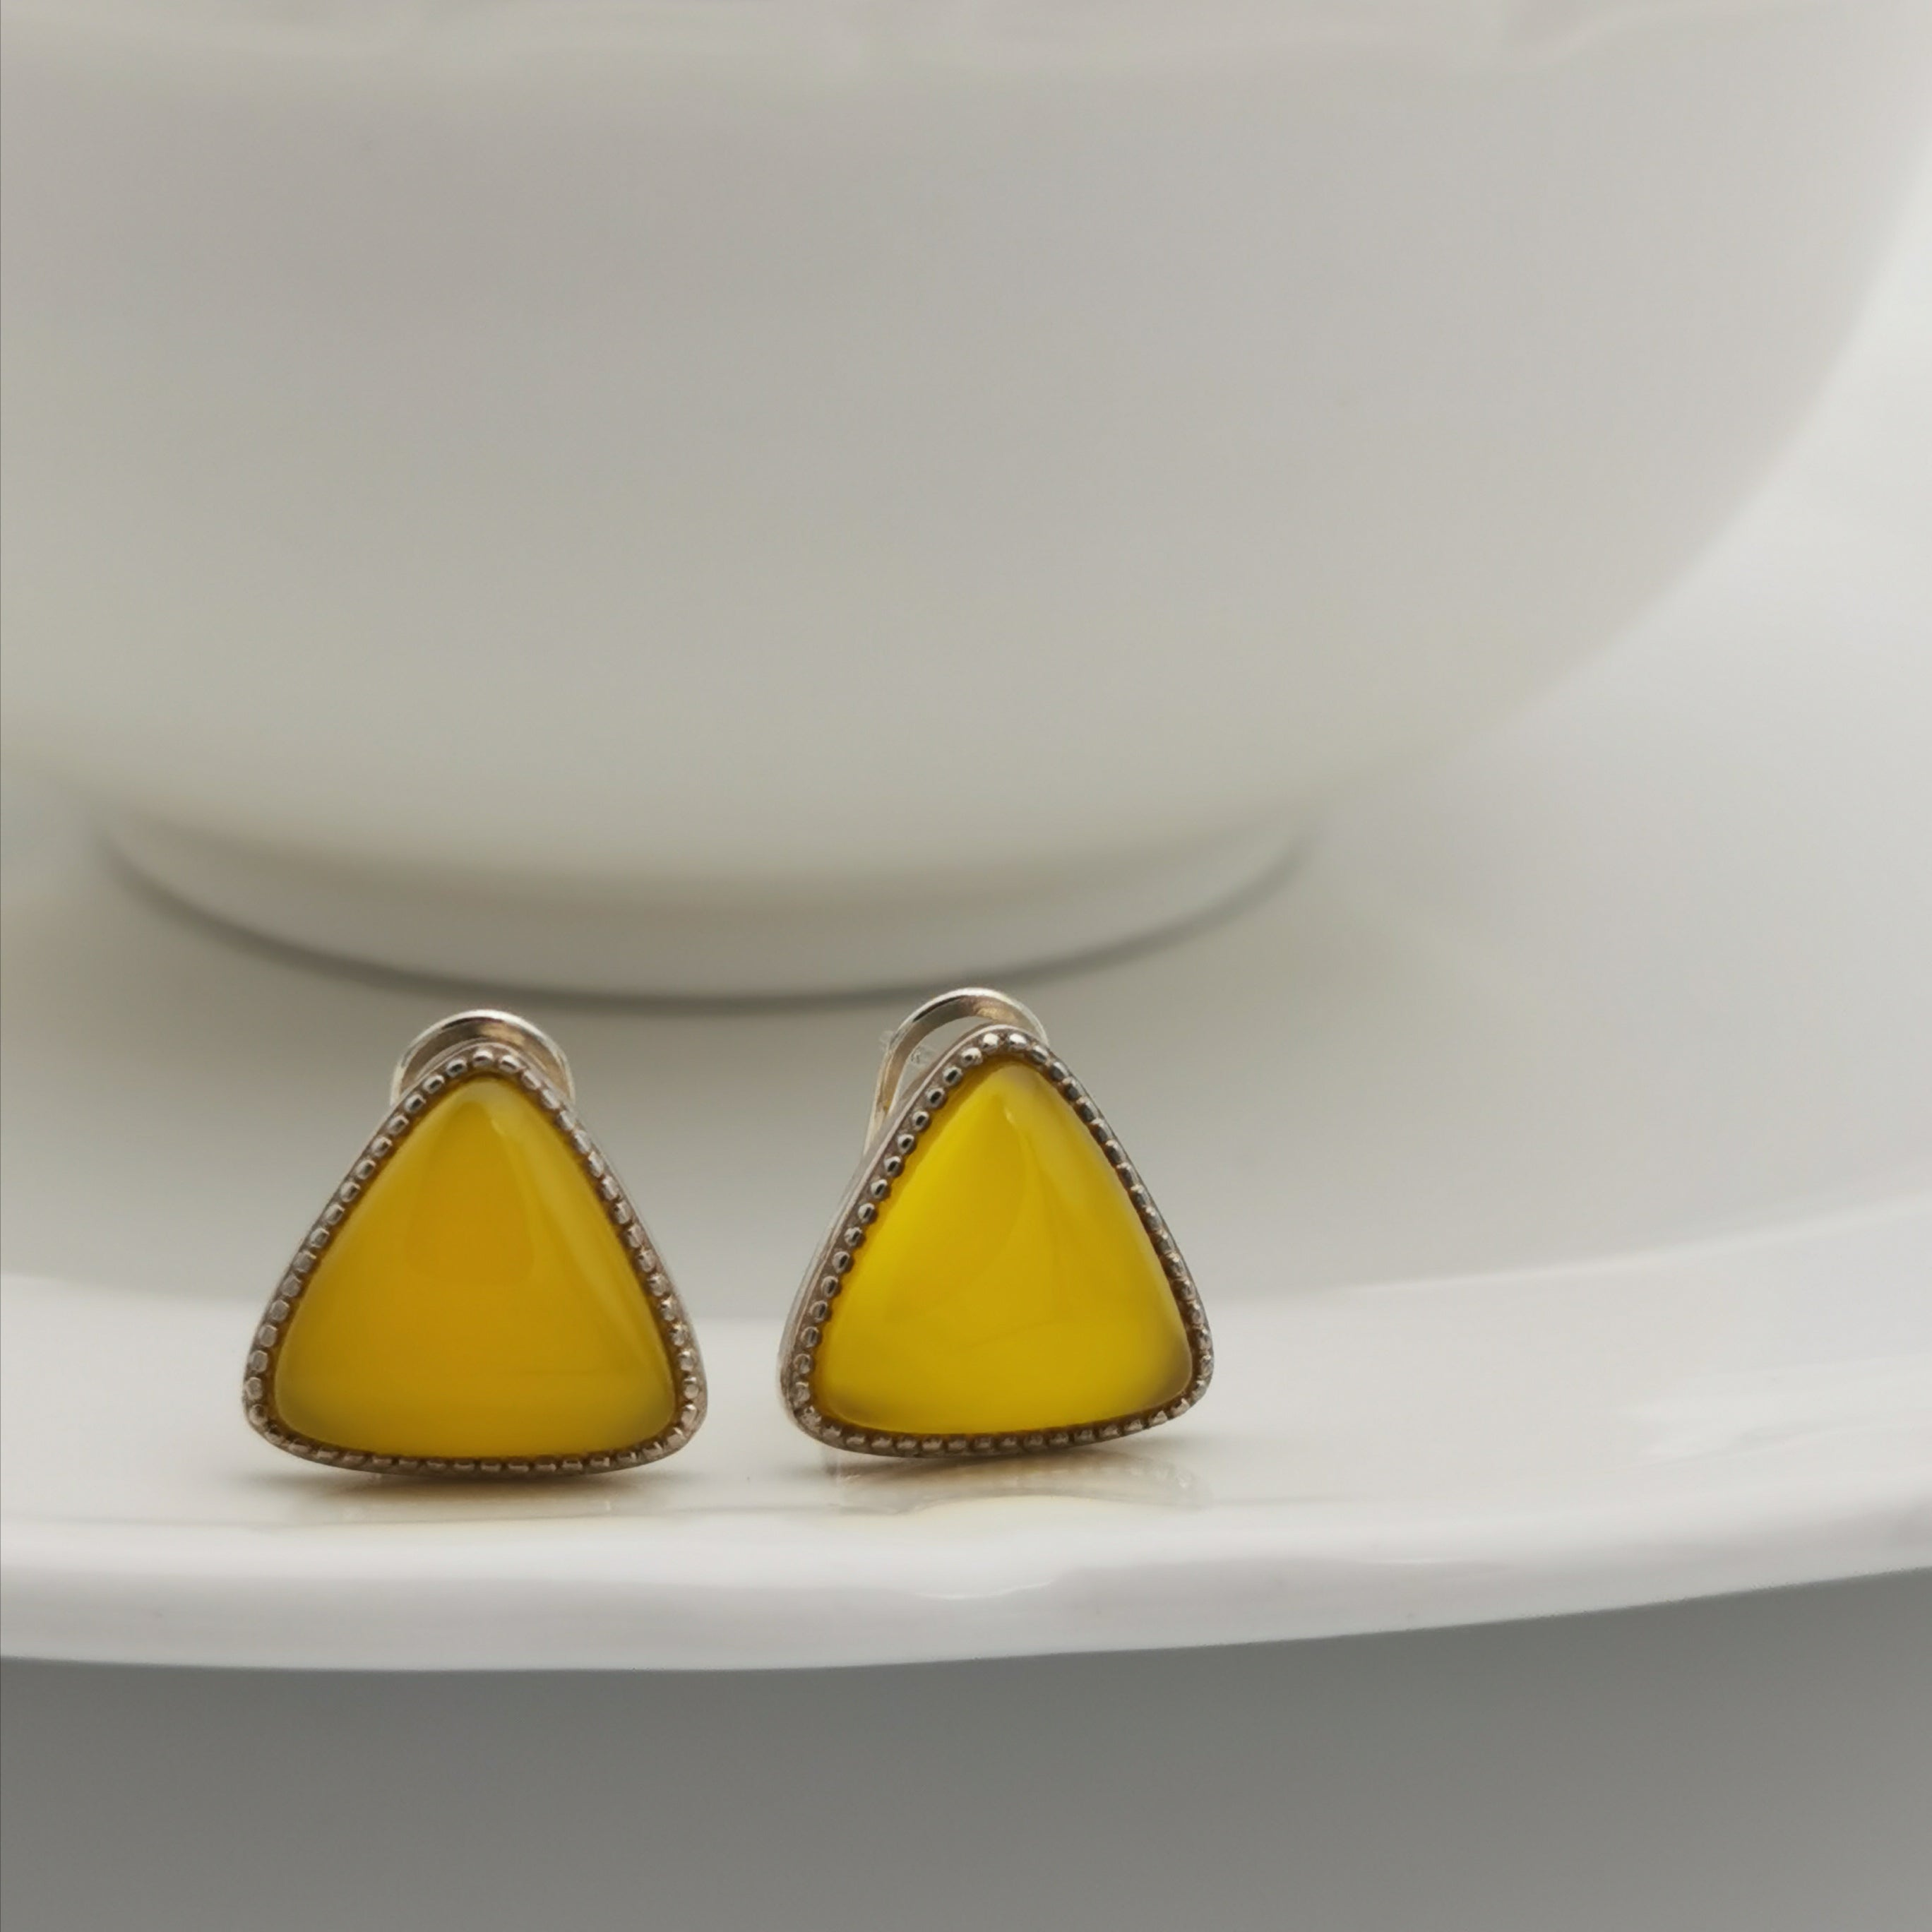 S925 yellow chalcedony stud earring